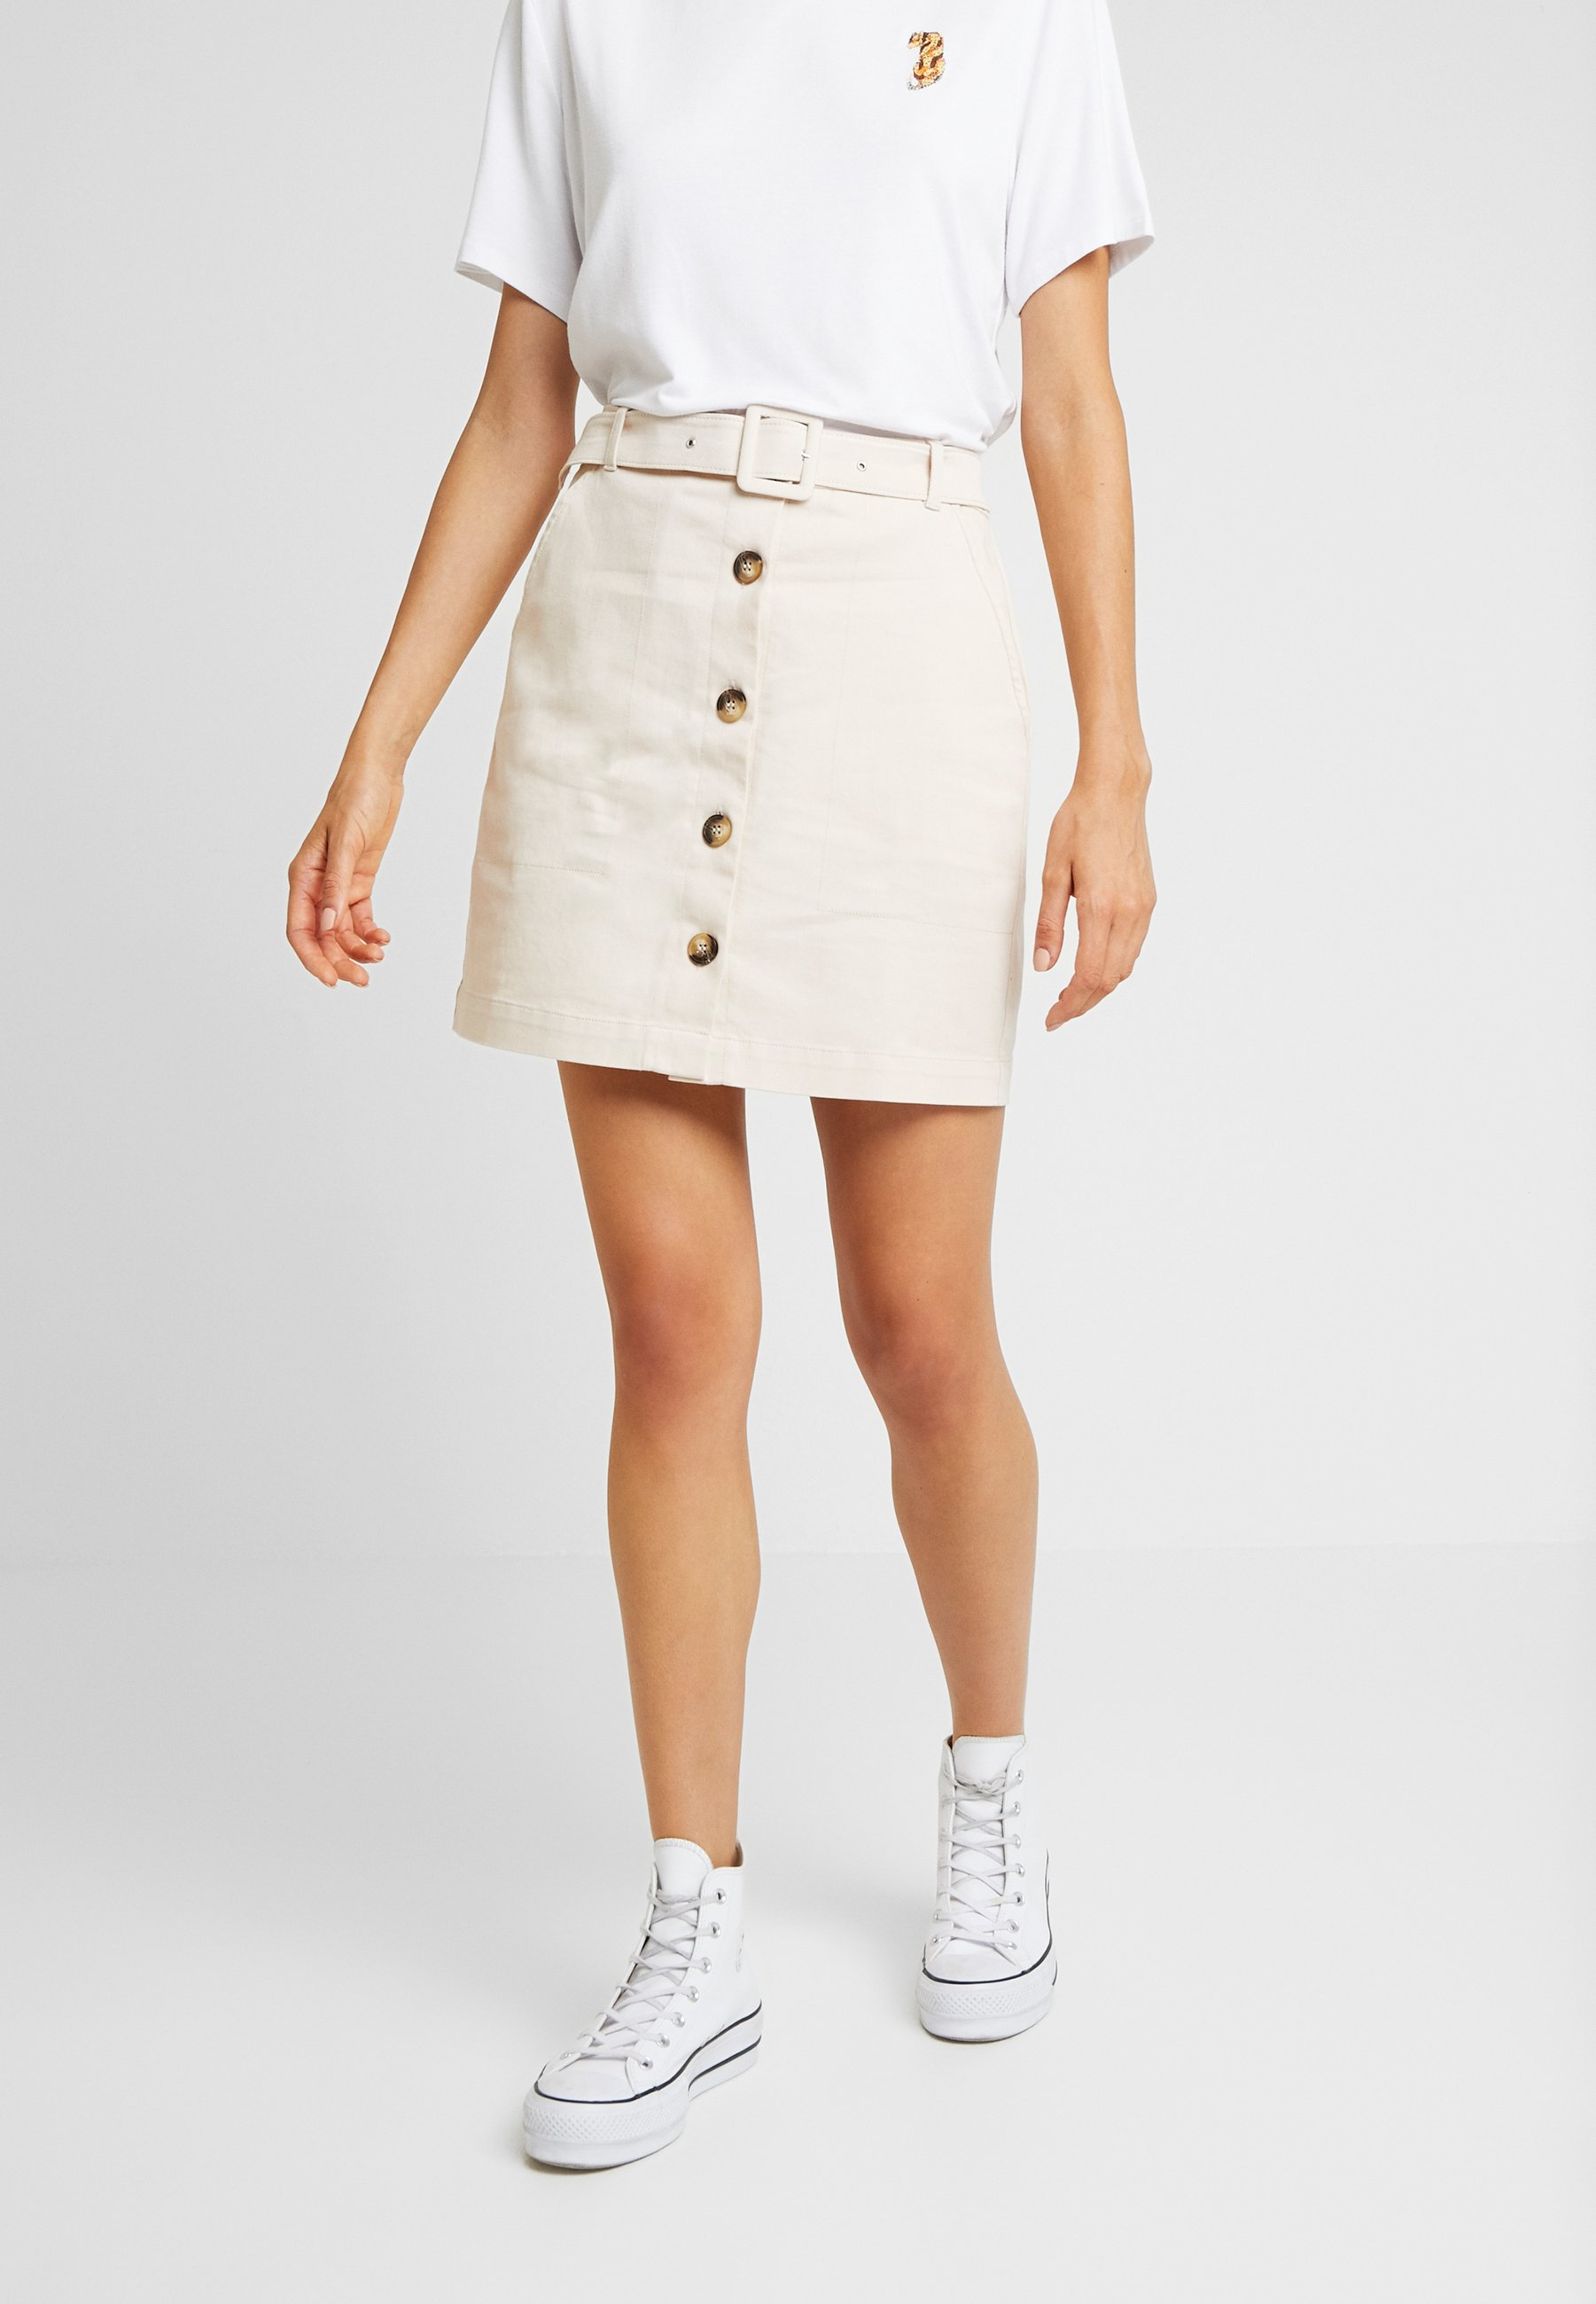 Belted Belted kd SkirtMinigonna Na SkirtMinigonna kd Na Sand HeD2bE9IYW